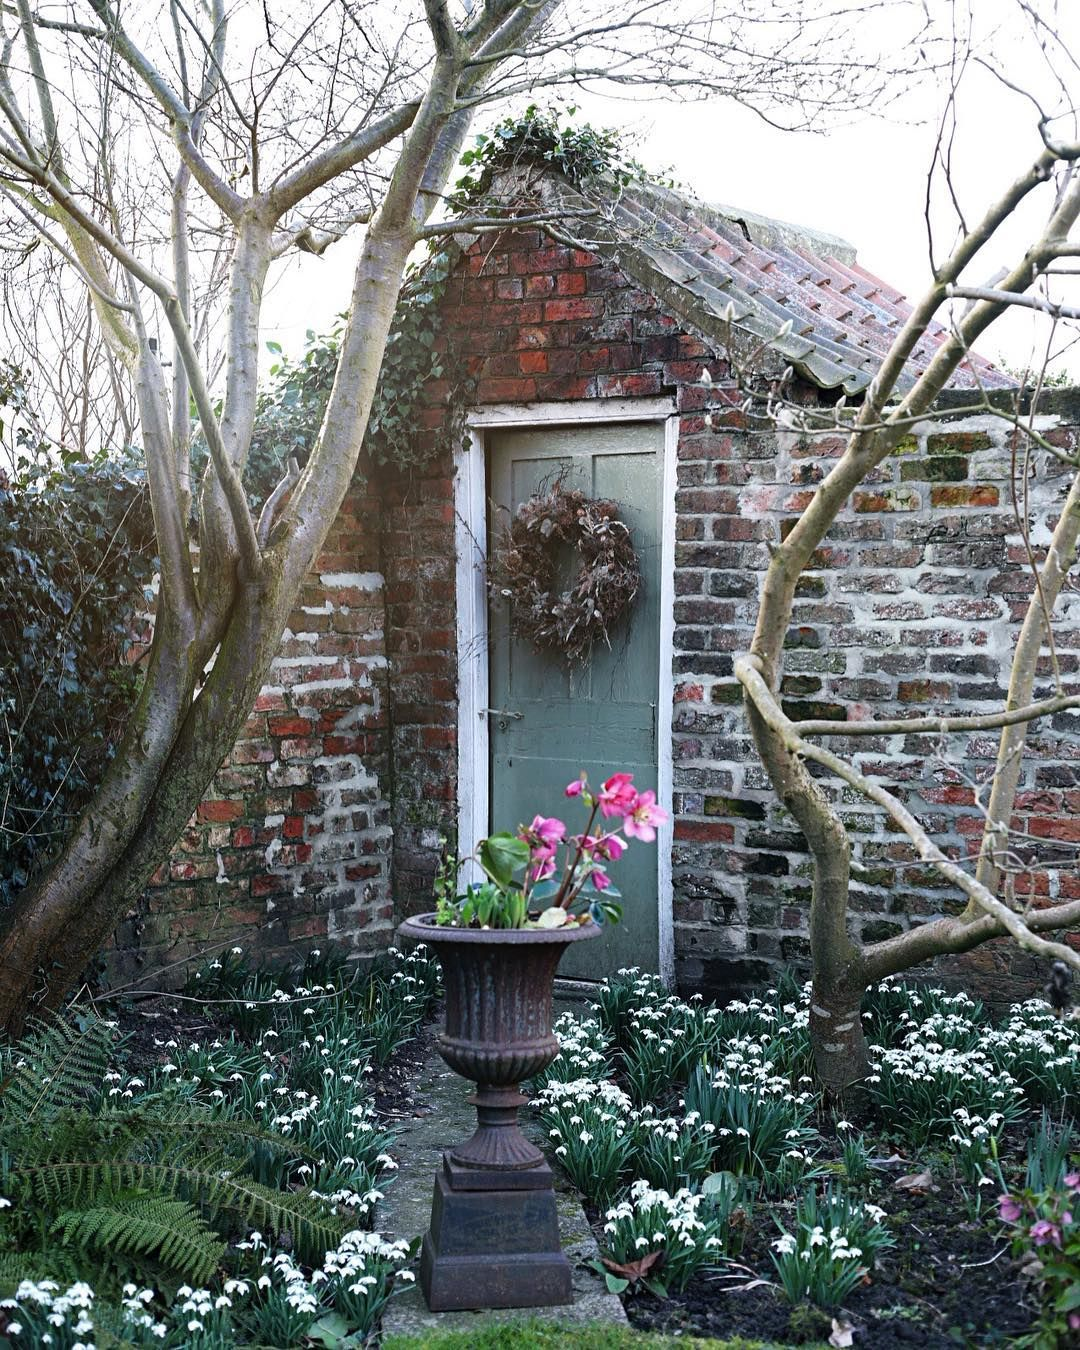 My Favourite Corner Of The Garden In February With A Carpet Of